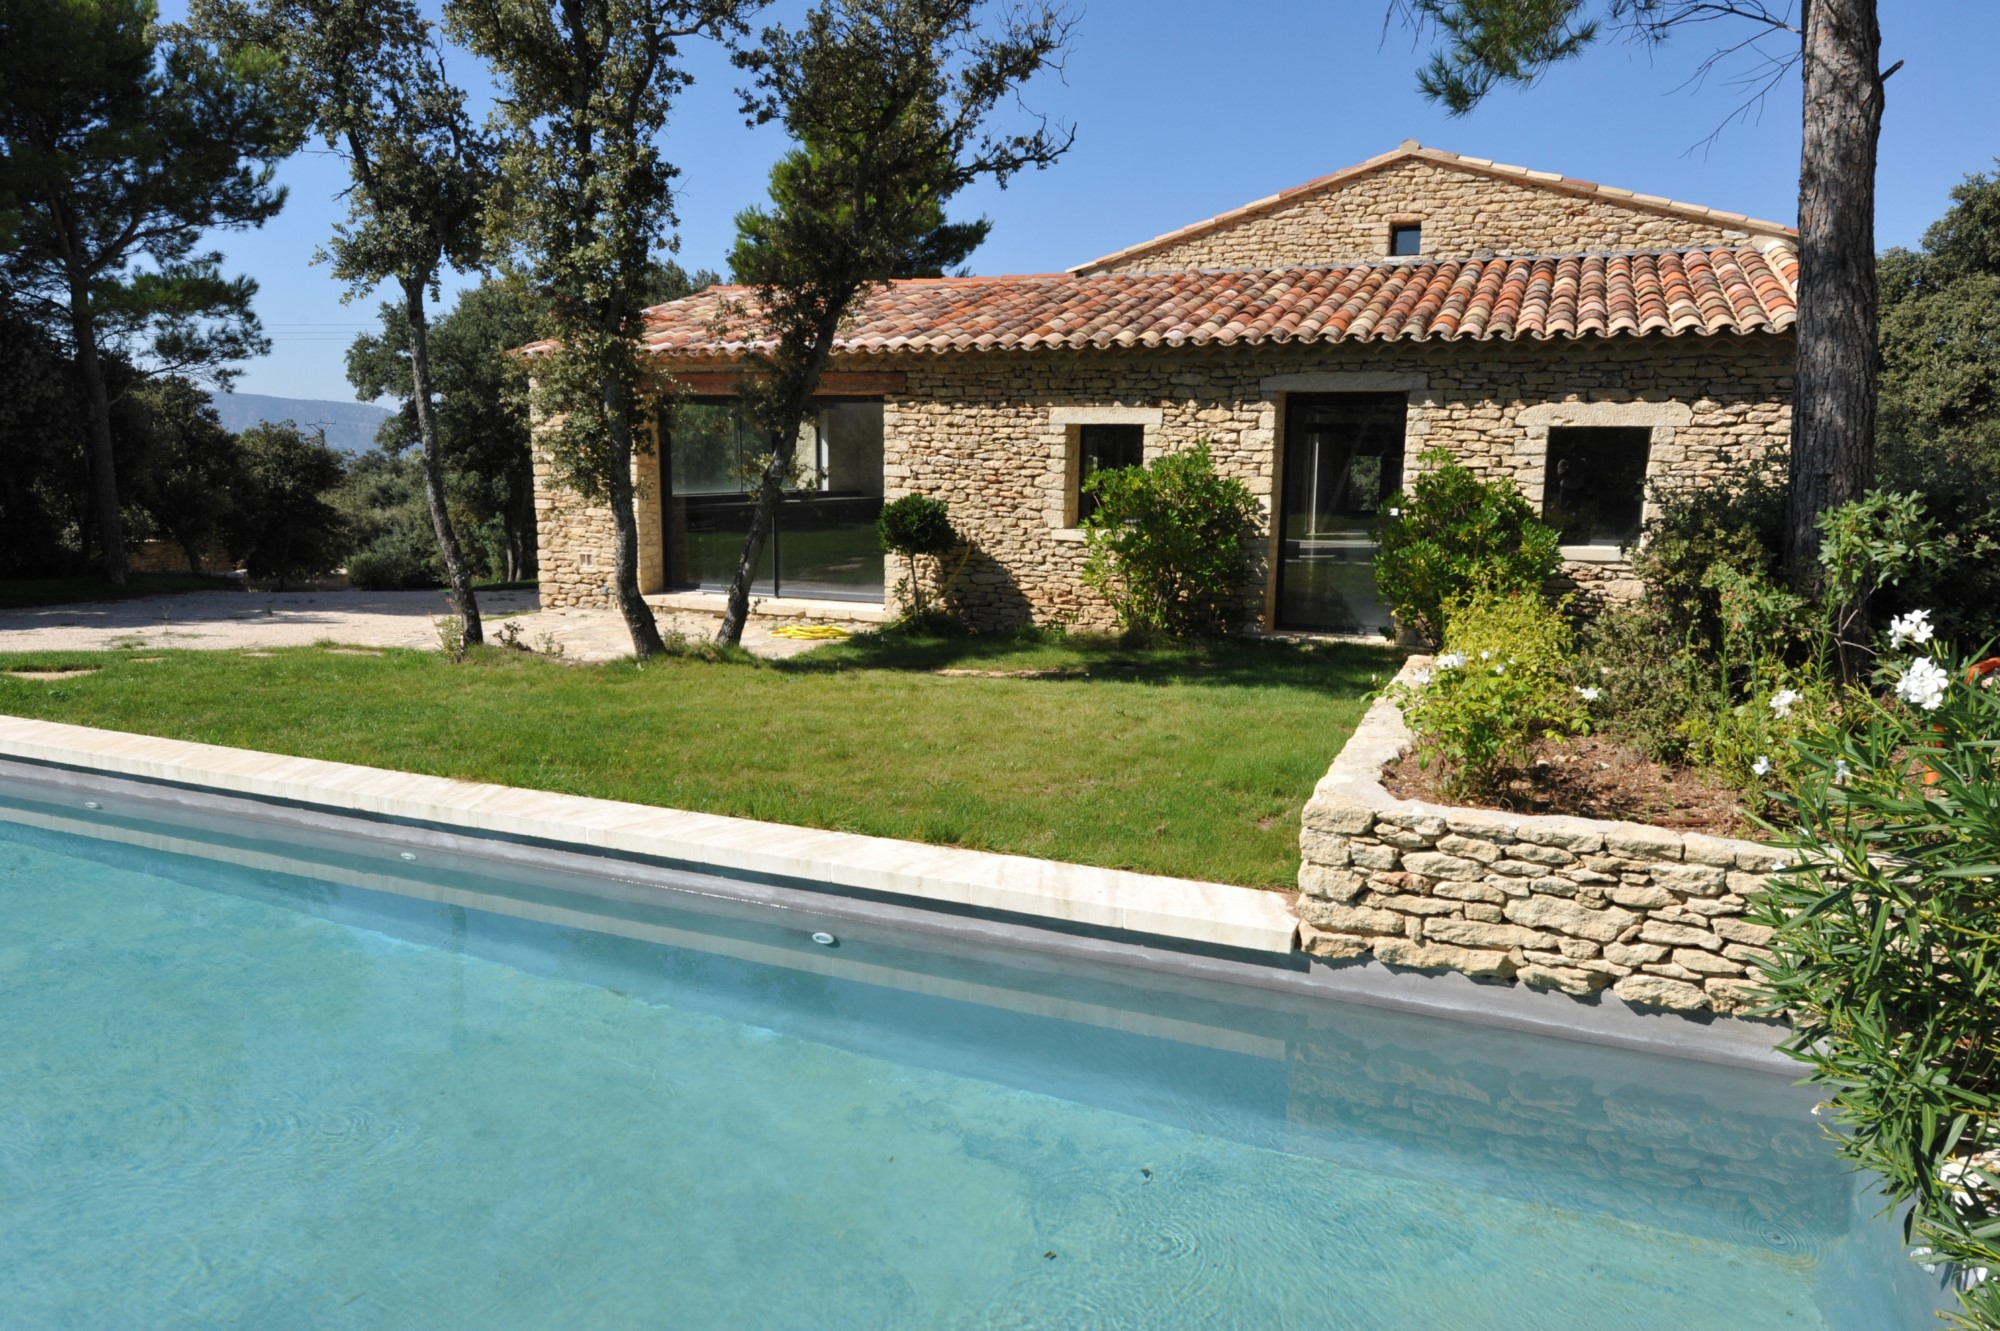 Ventes a vendre gordes maison contemporaine avec piscine for Piscines contemporaines